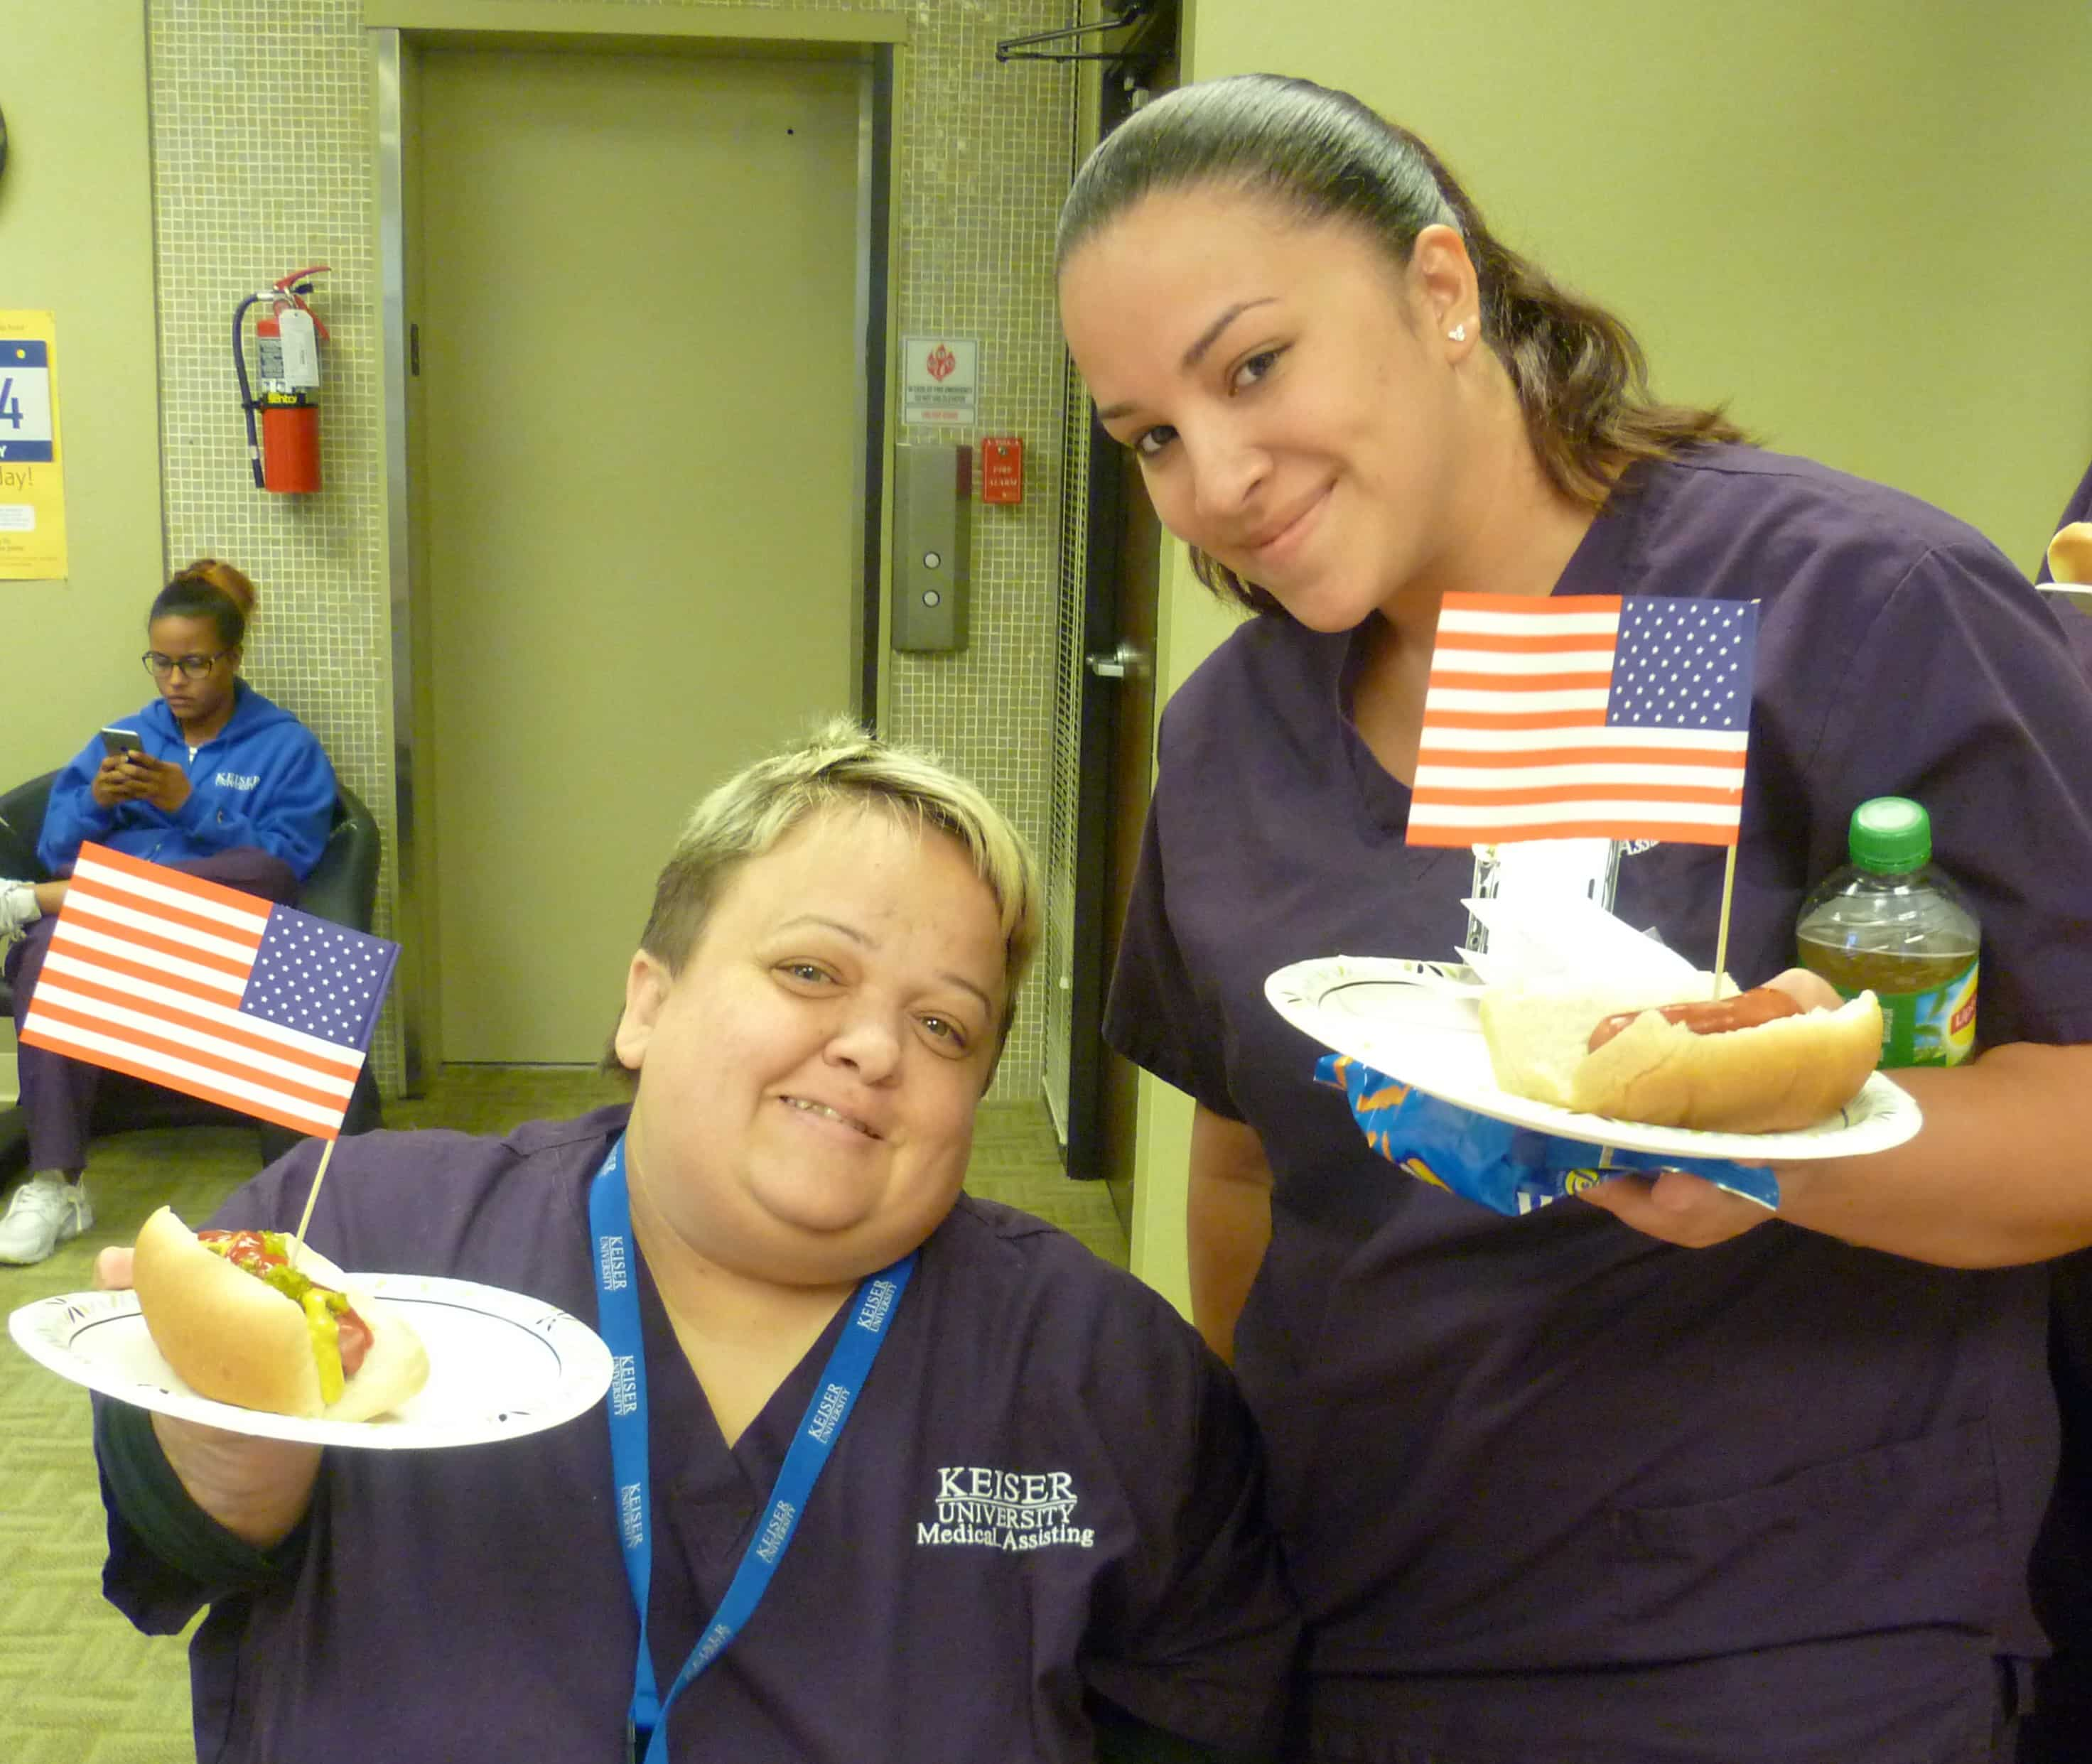 New Port Richey Campus Celebrates the 4th of July